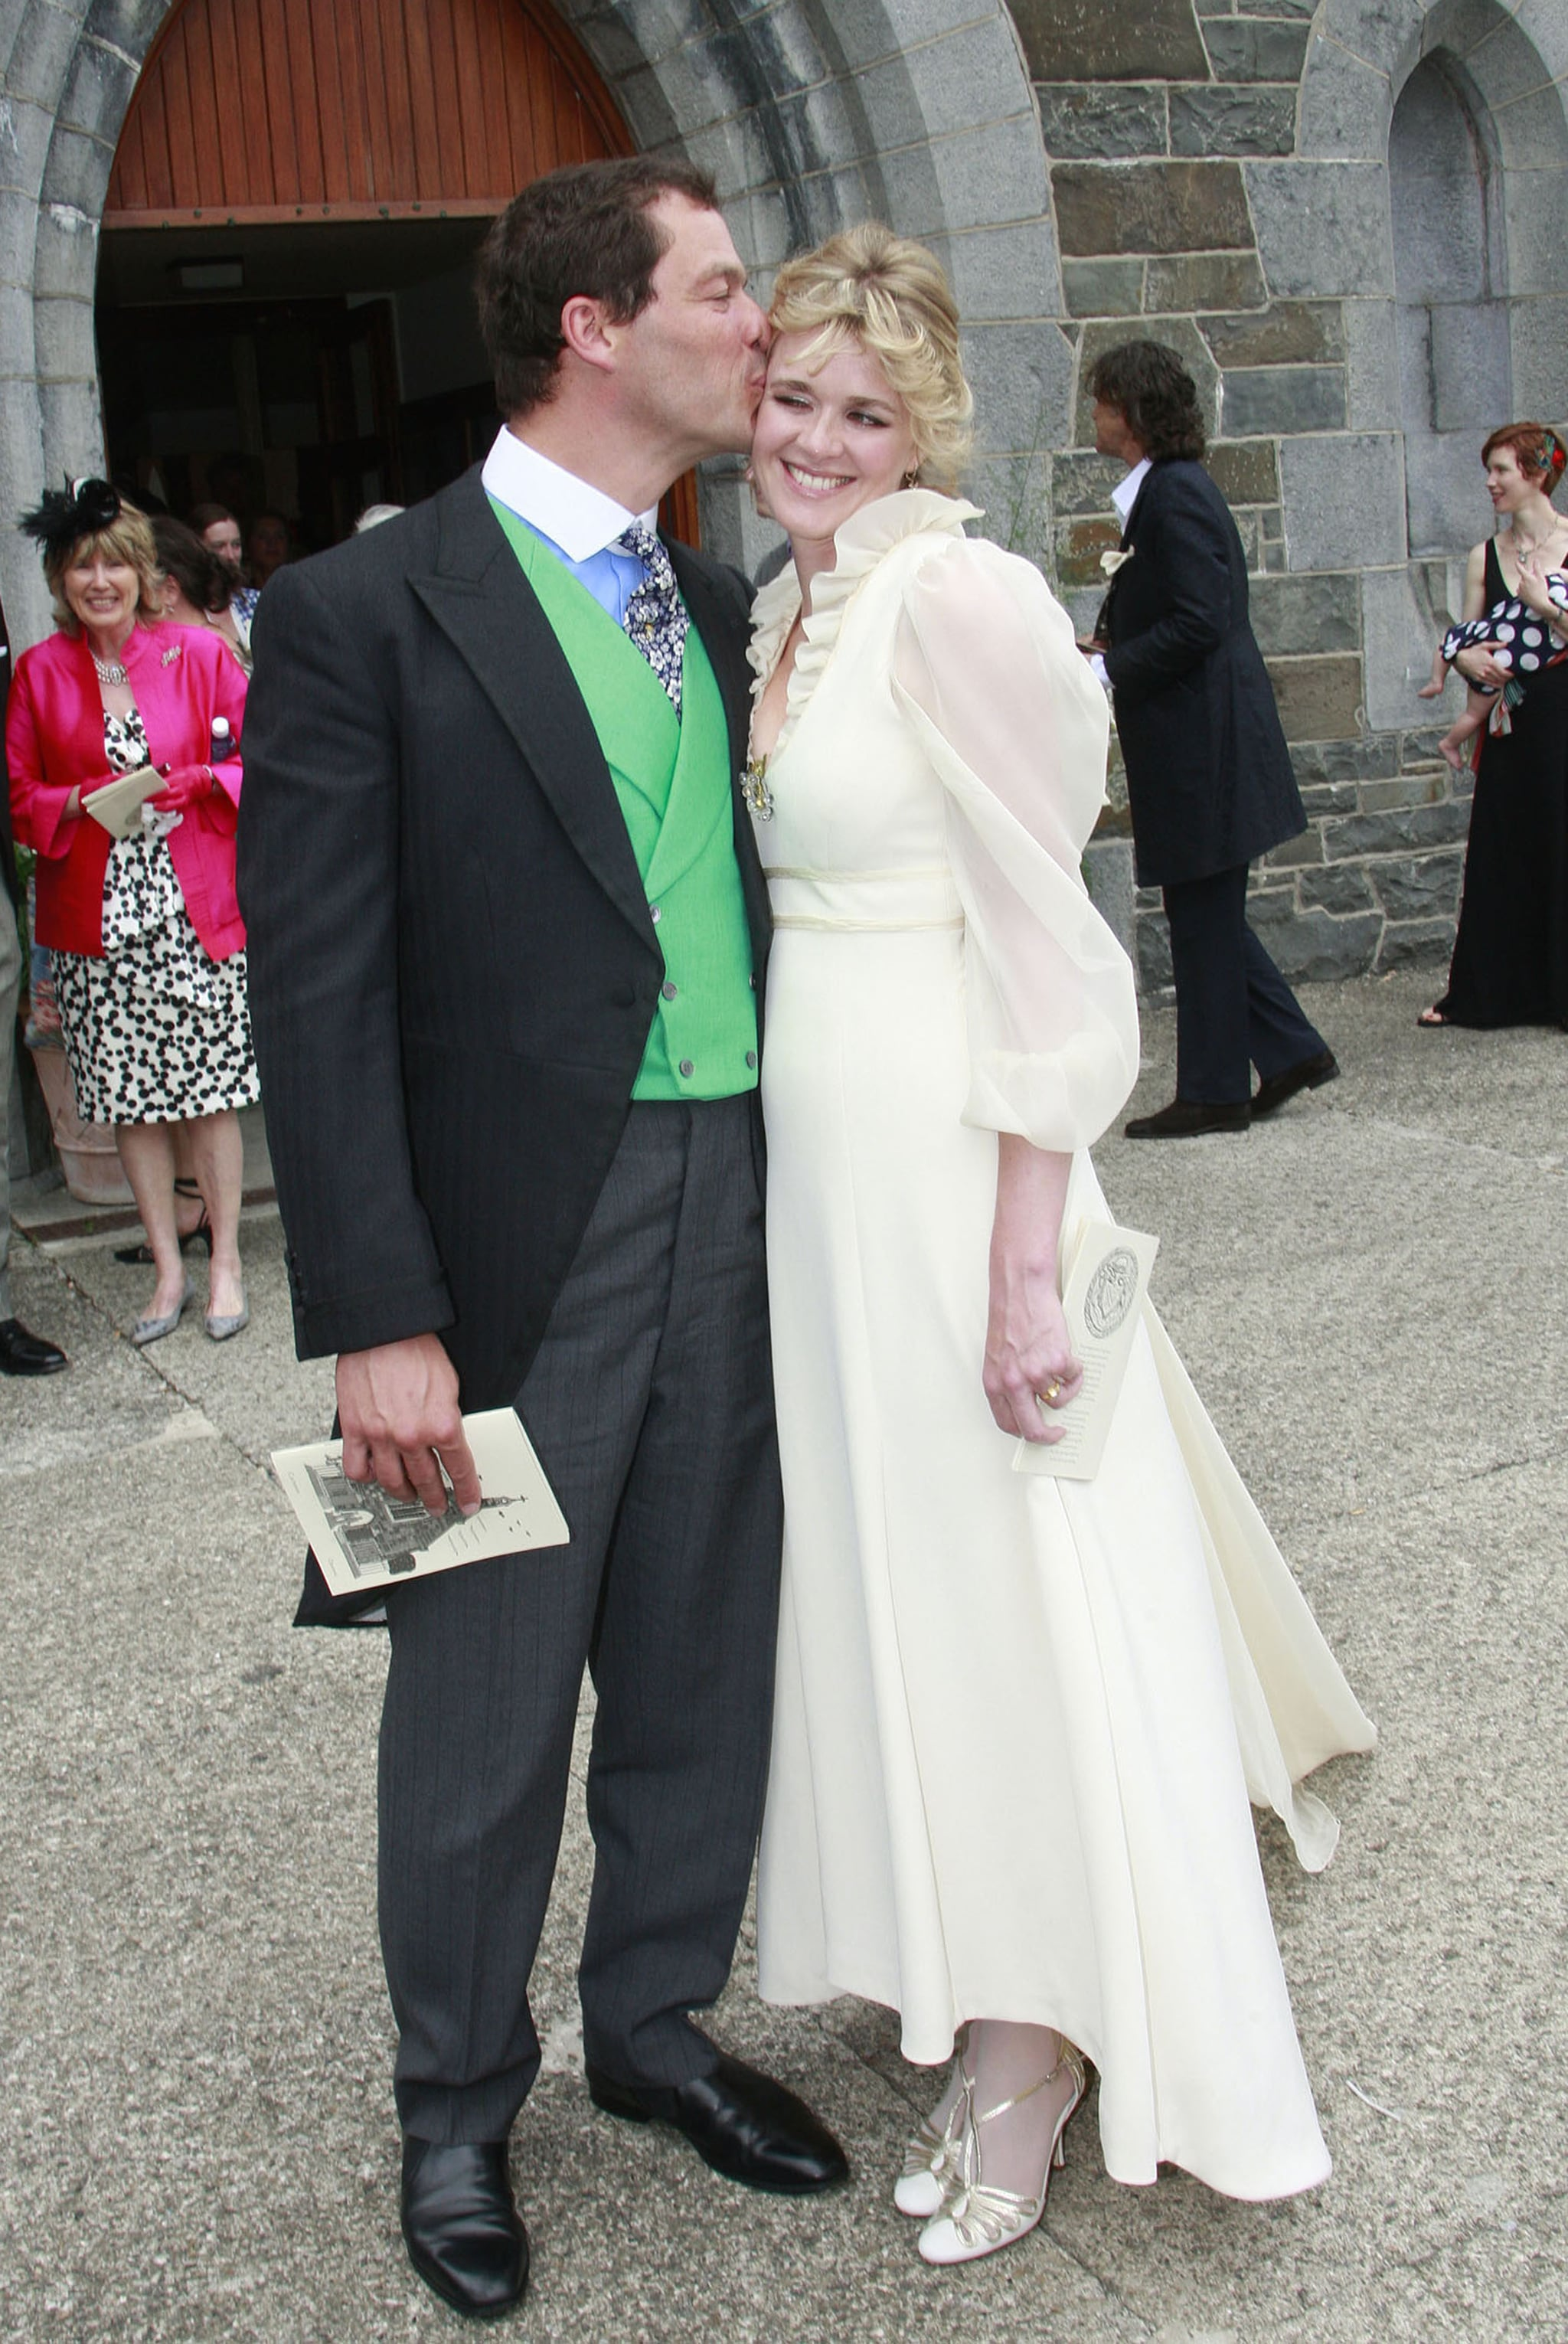 Pictures of The Wire's Dominic West Wedding Marrying ...